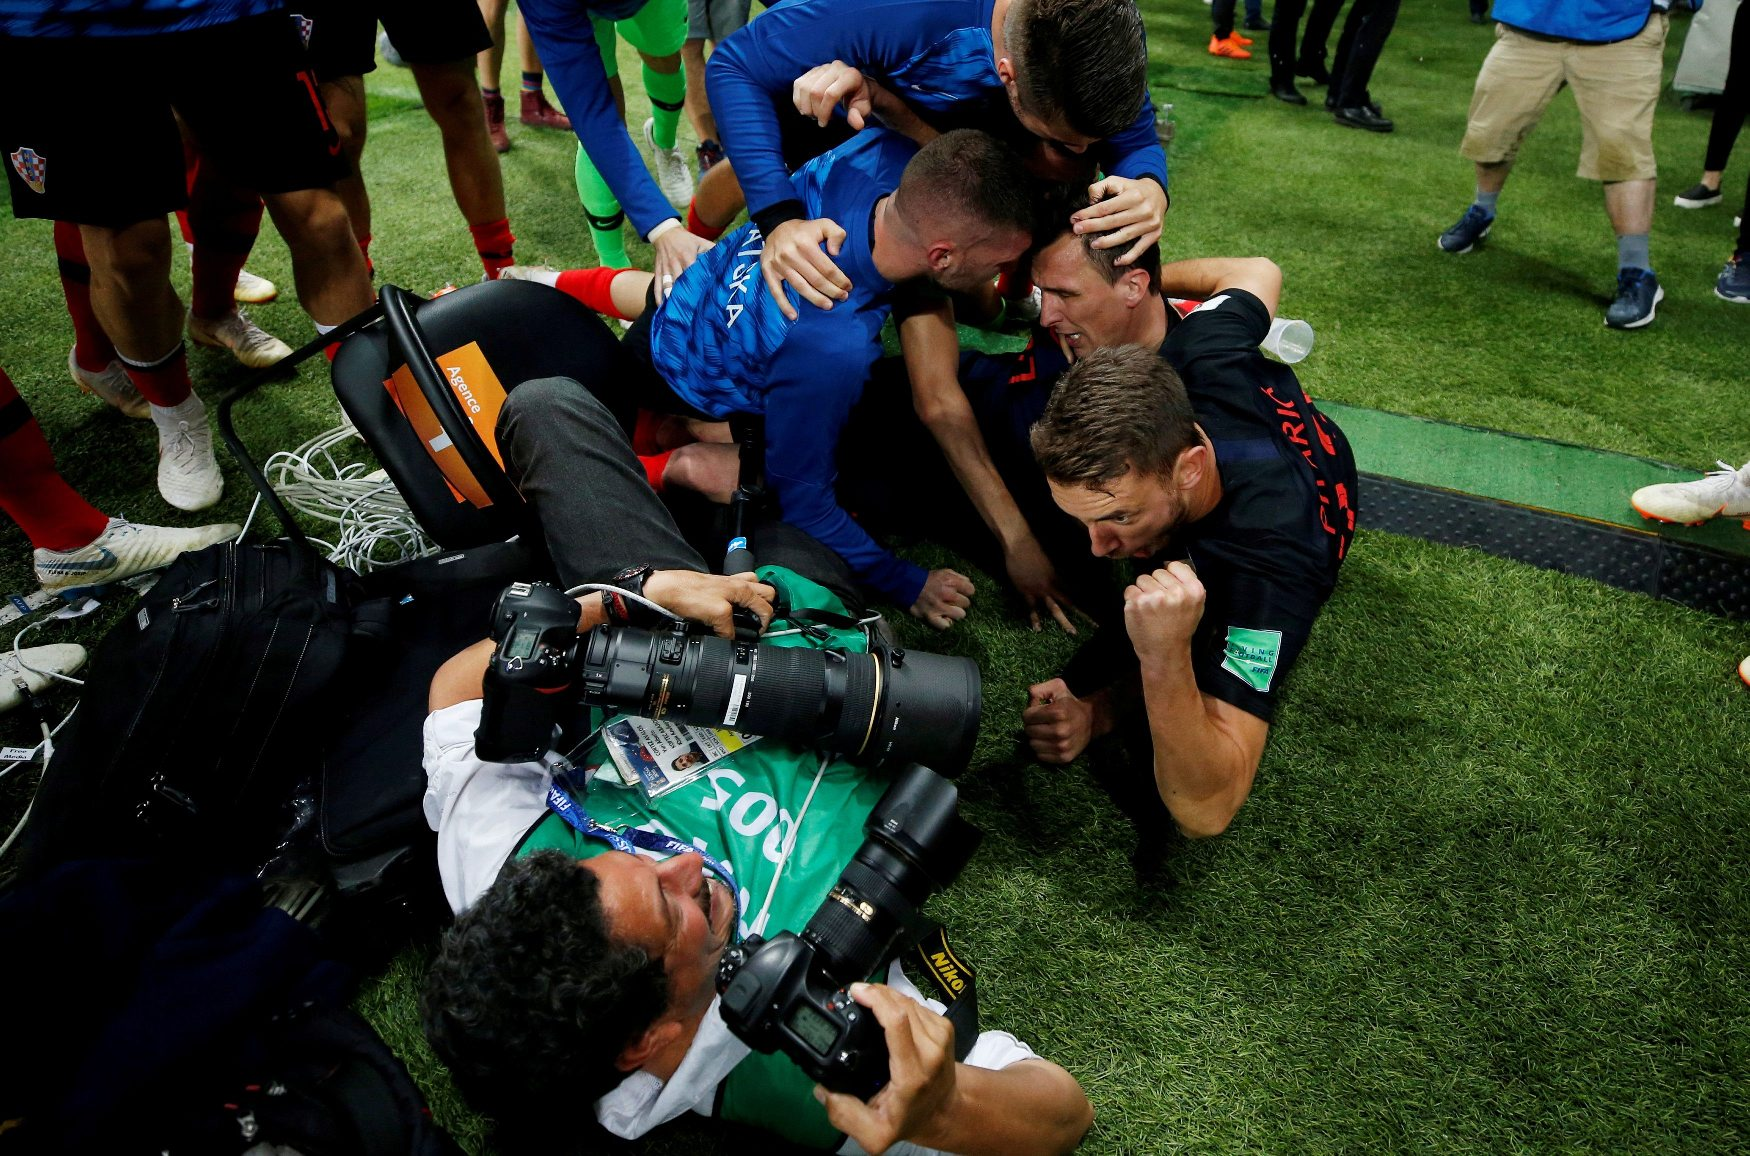 Soccer Football - World Cup - Semi Final - Croatia v England - Luzhniki Stadium, Moscow, Russia - July 11, 2018  Croatia players celebrate next to an AFP photographer Yuri Cortez after Mario Mandzukic scores their second goal   REUTERS/Carl Recine     TPX IMAGES OF THE DAY